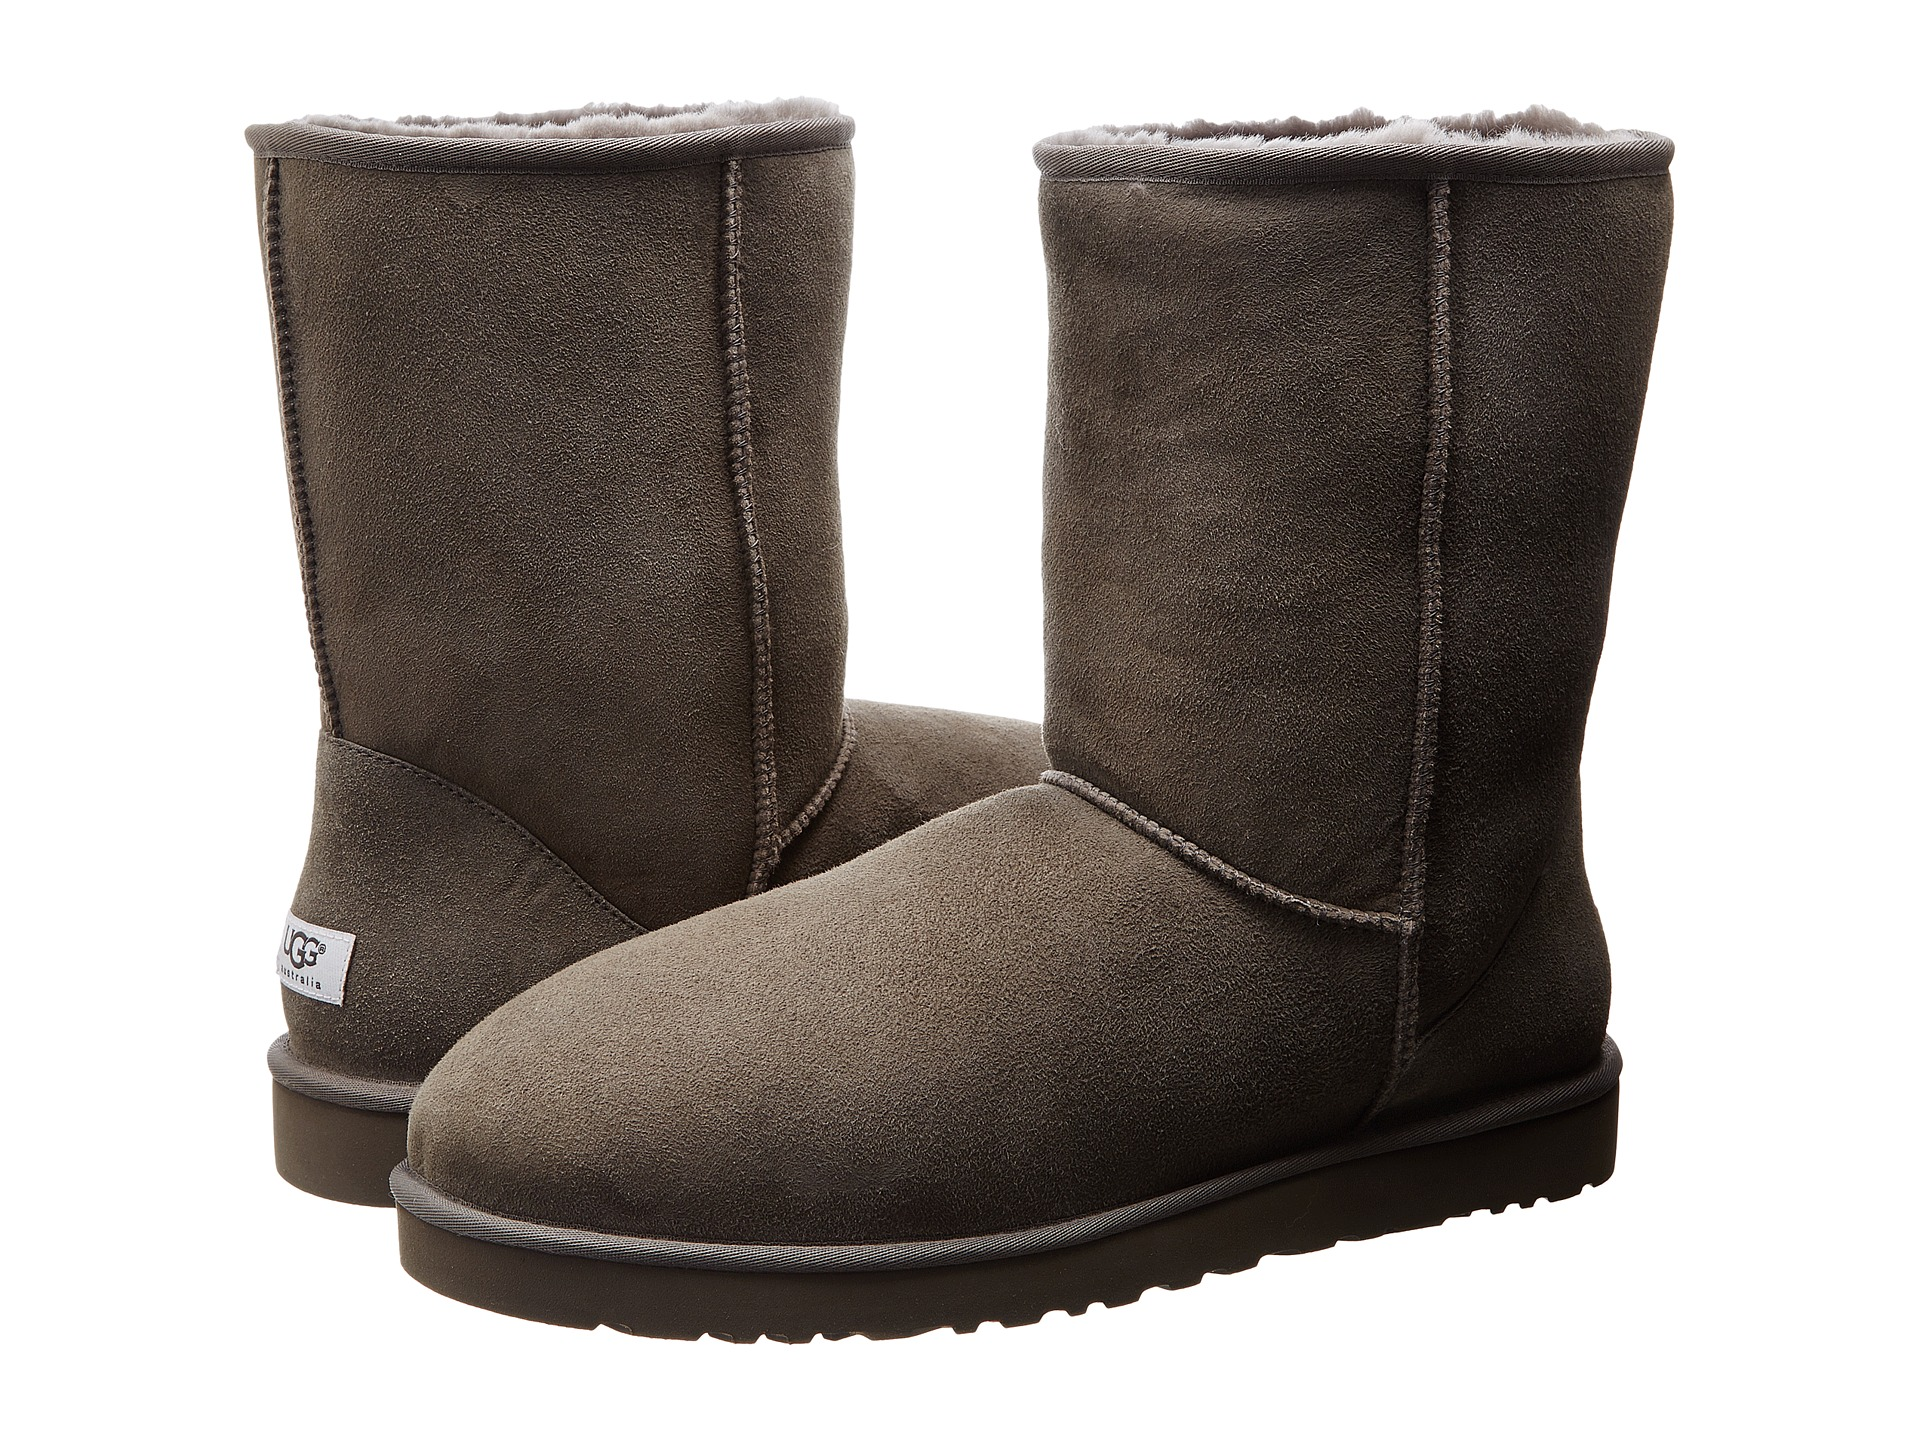 Ugg Boots For Snow And Ice